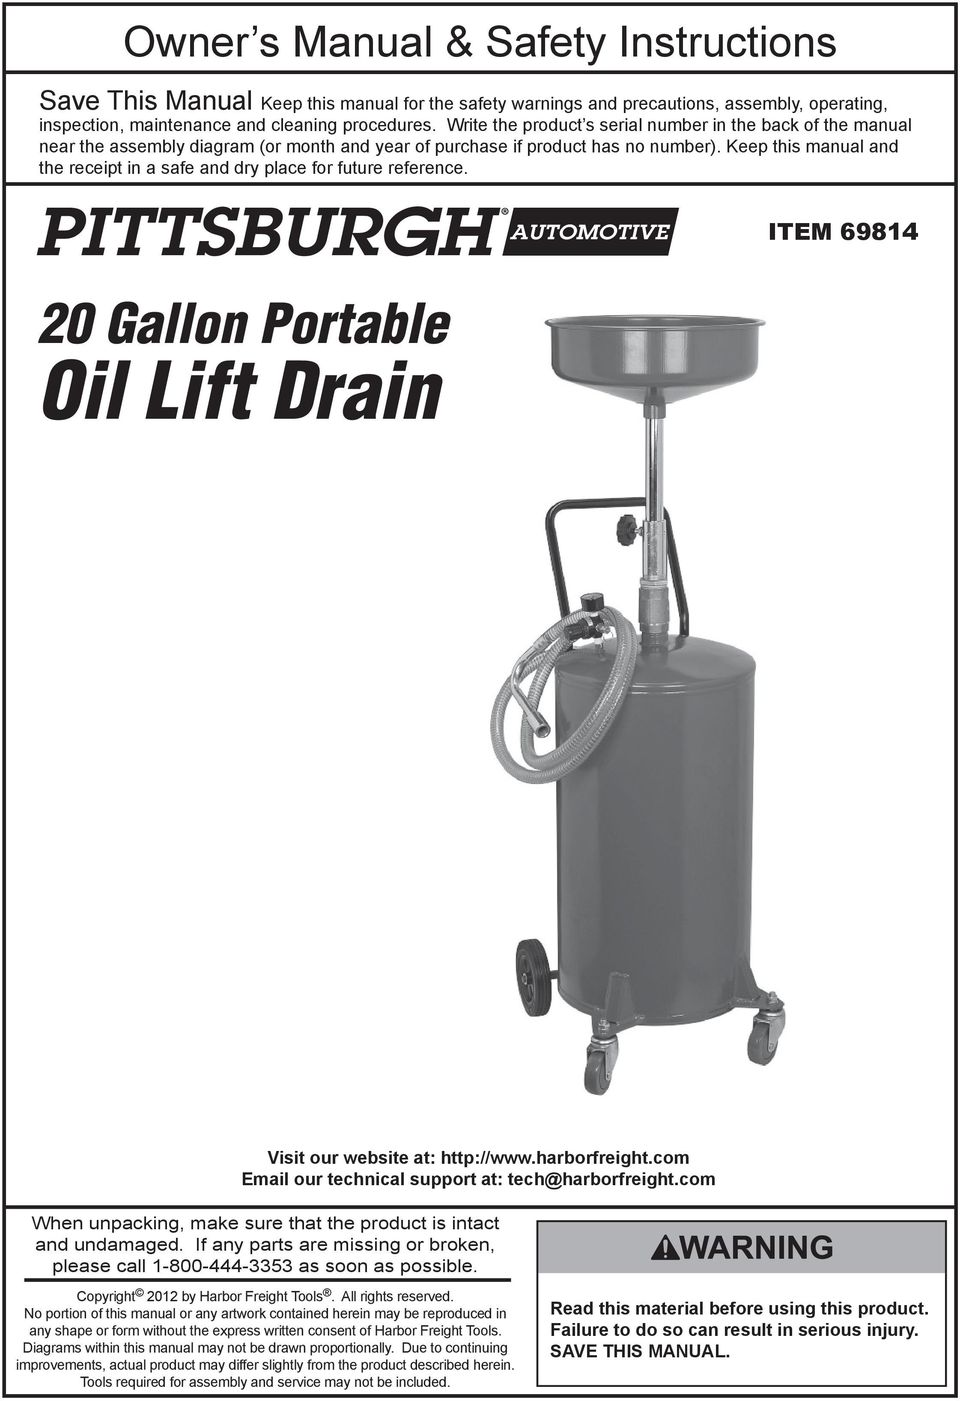 Keep this manual and the receipt in a safe and dry place for future reference. ITEM 69814 20 Gallon Portable Oil Lift Drain Visit our website at: http://www.harborfreight.